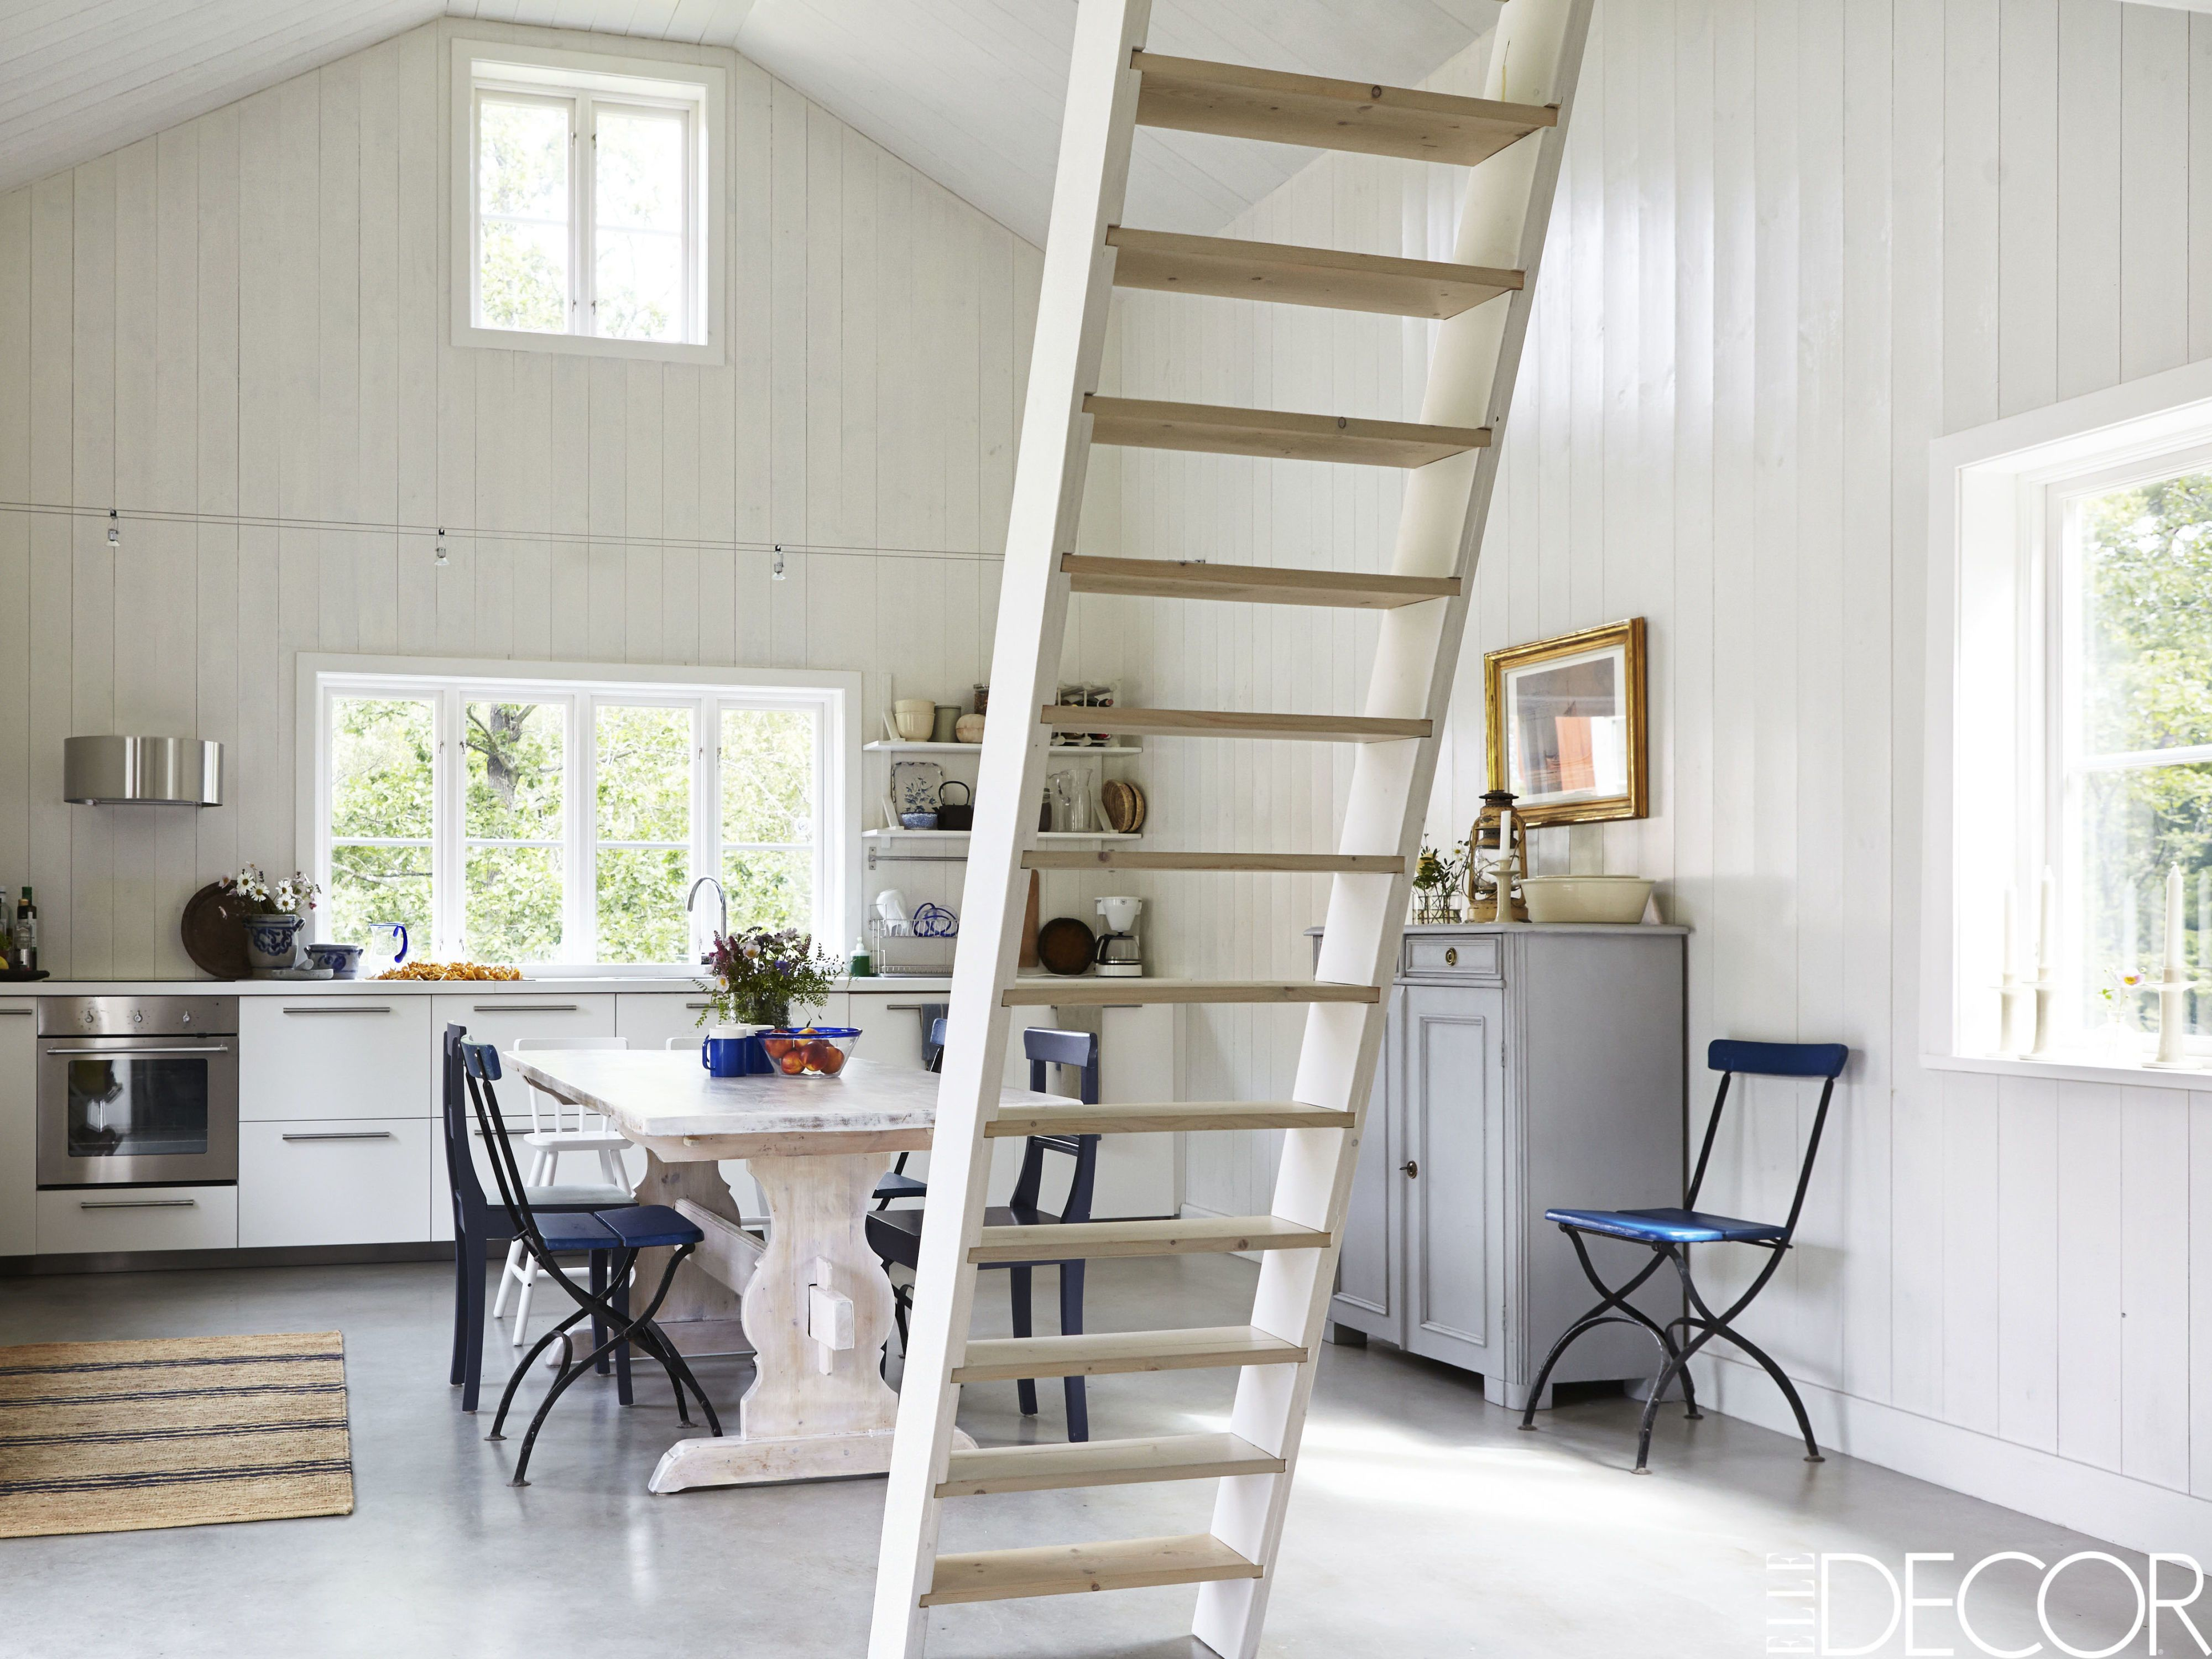 HOUSE TOUR: A Rustic And Minimalist Cottage Is A Lesson In Scandinavian  Design